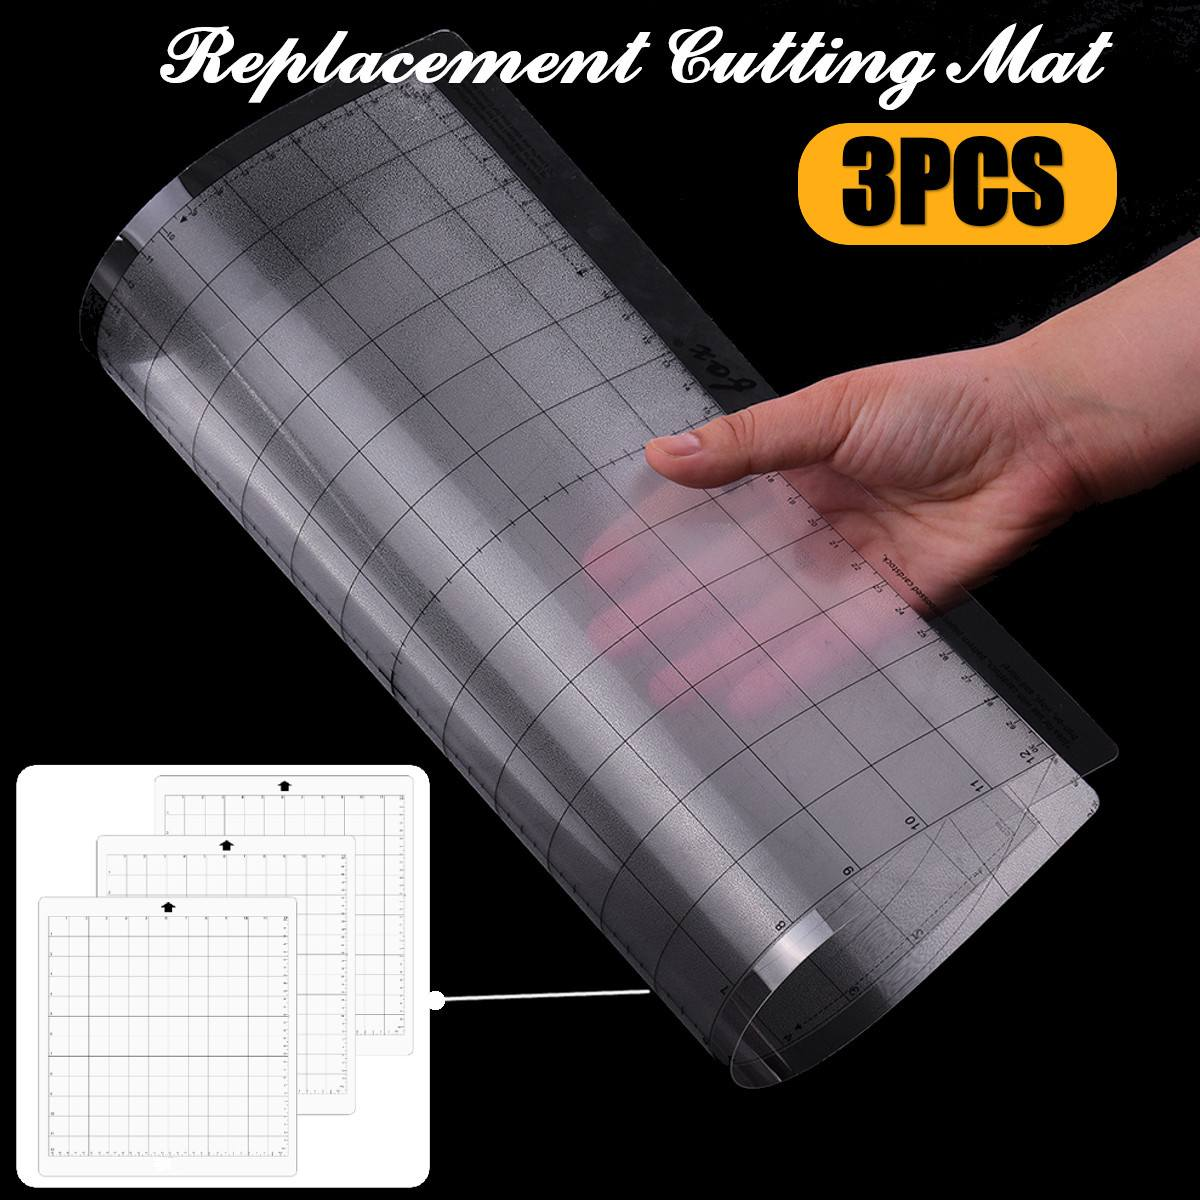 3PCS Replacement Cutting Mat Transparent Adhesive Mat Pad With Measuring Grid 12 By 12-Inch For Silhouette Cameo Plotter Machine